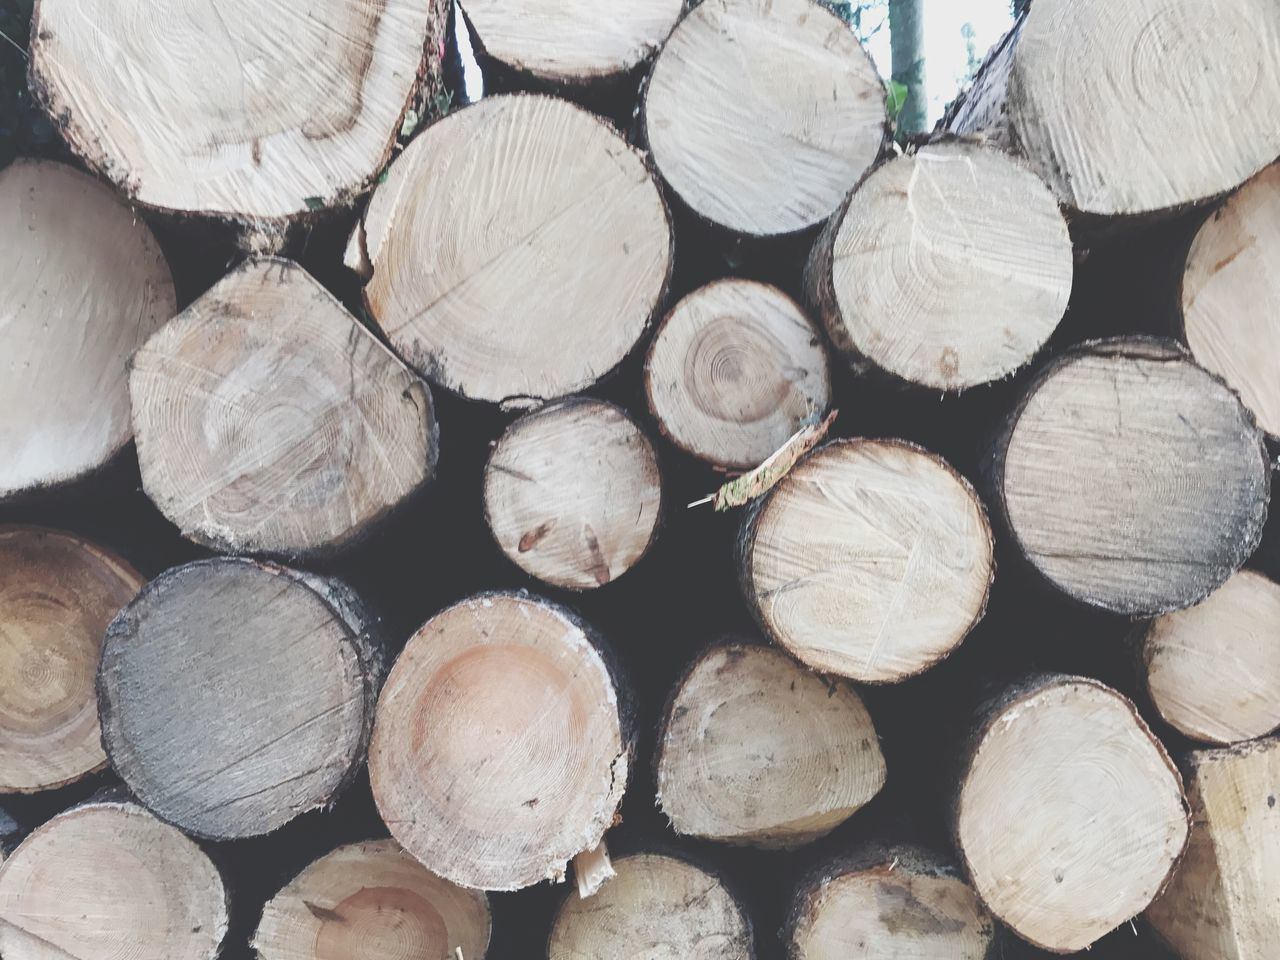 log, timber, firewood, stack, woodpile, lumber industry, forestry industry, deforestation, fuel and power generation, wood - material, wood, heap, abundance, fossil fuel, environmental issues, large group of objects, backgrounds, full frame, pile, textured, arrangement, tree ring, no people, day, outdoors, close-up, nature